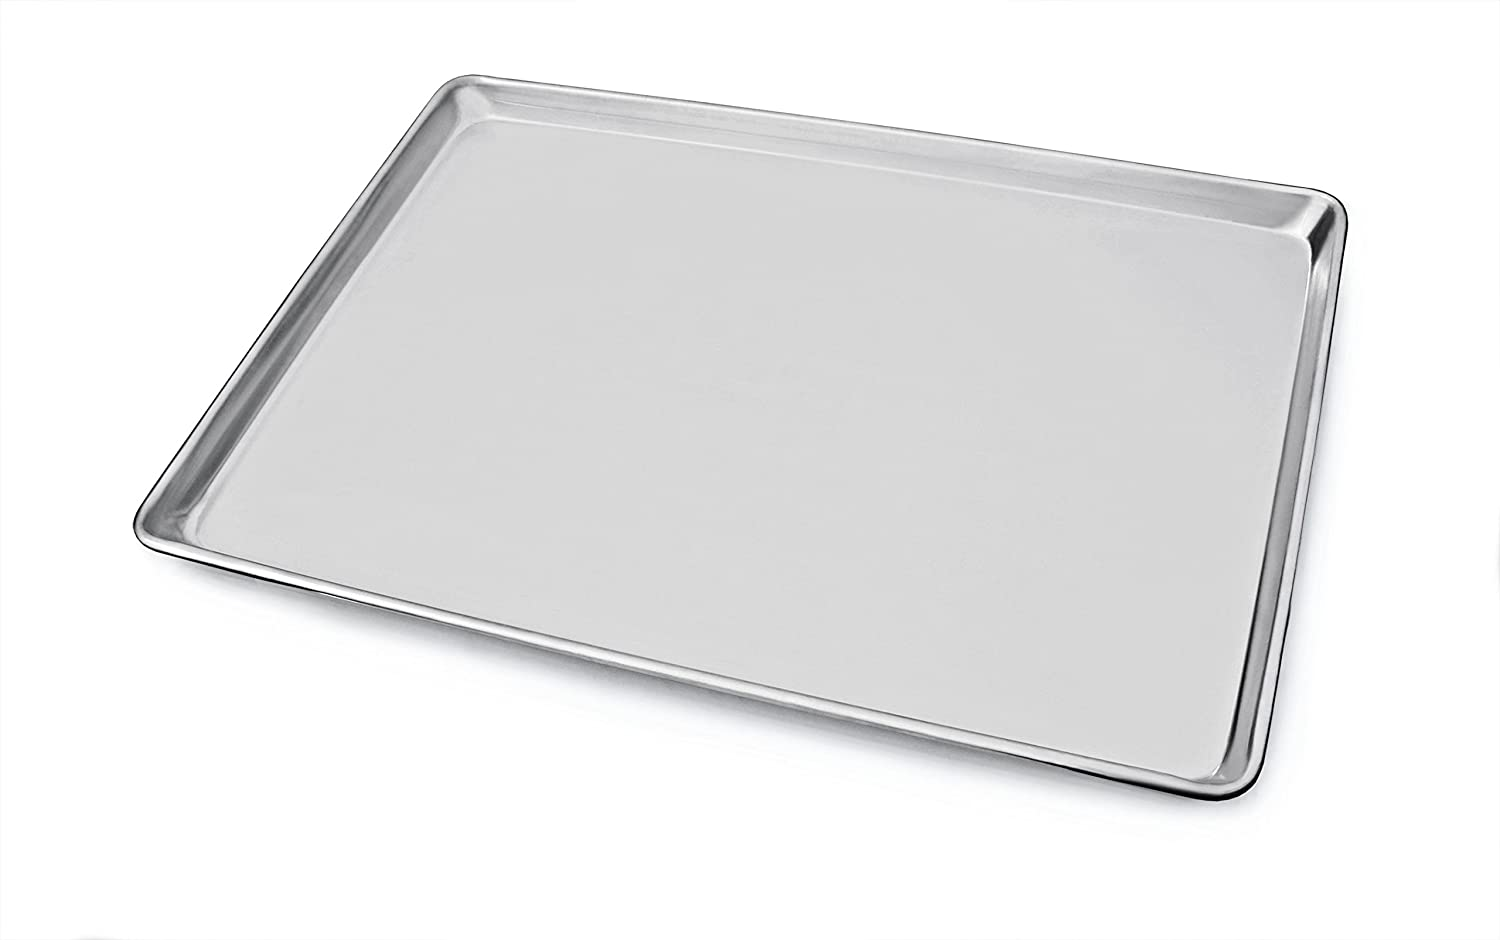 "New Star Foodservice 36923 Commercial-Grade 18-Gauge Aluminum Sheet Pan/Bun Pan, 18"" L x 26"" W x 1"" H (Full Size) 